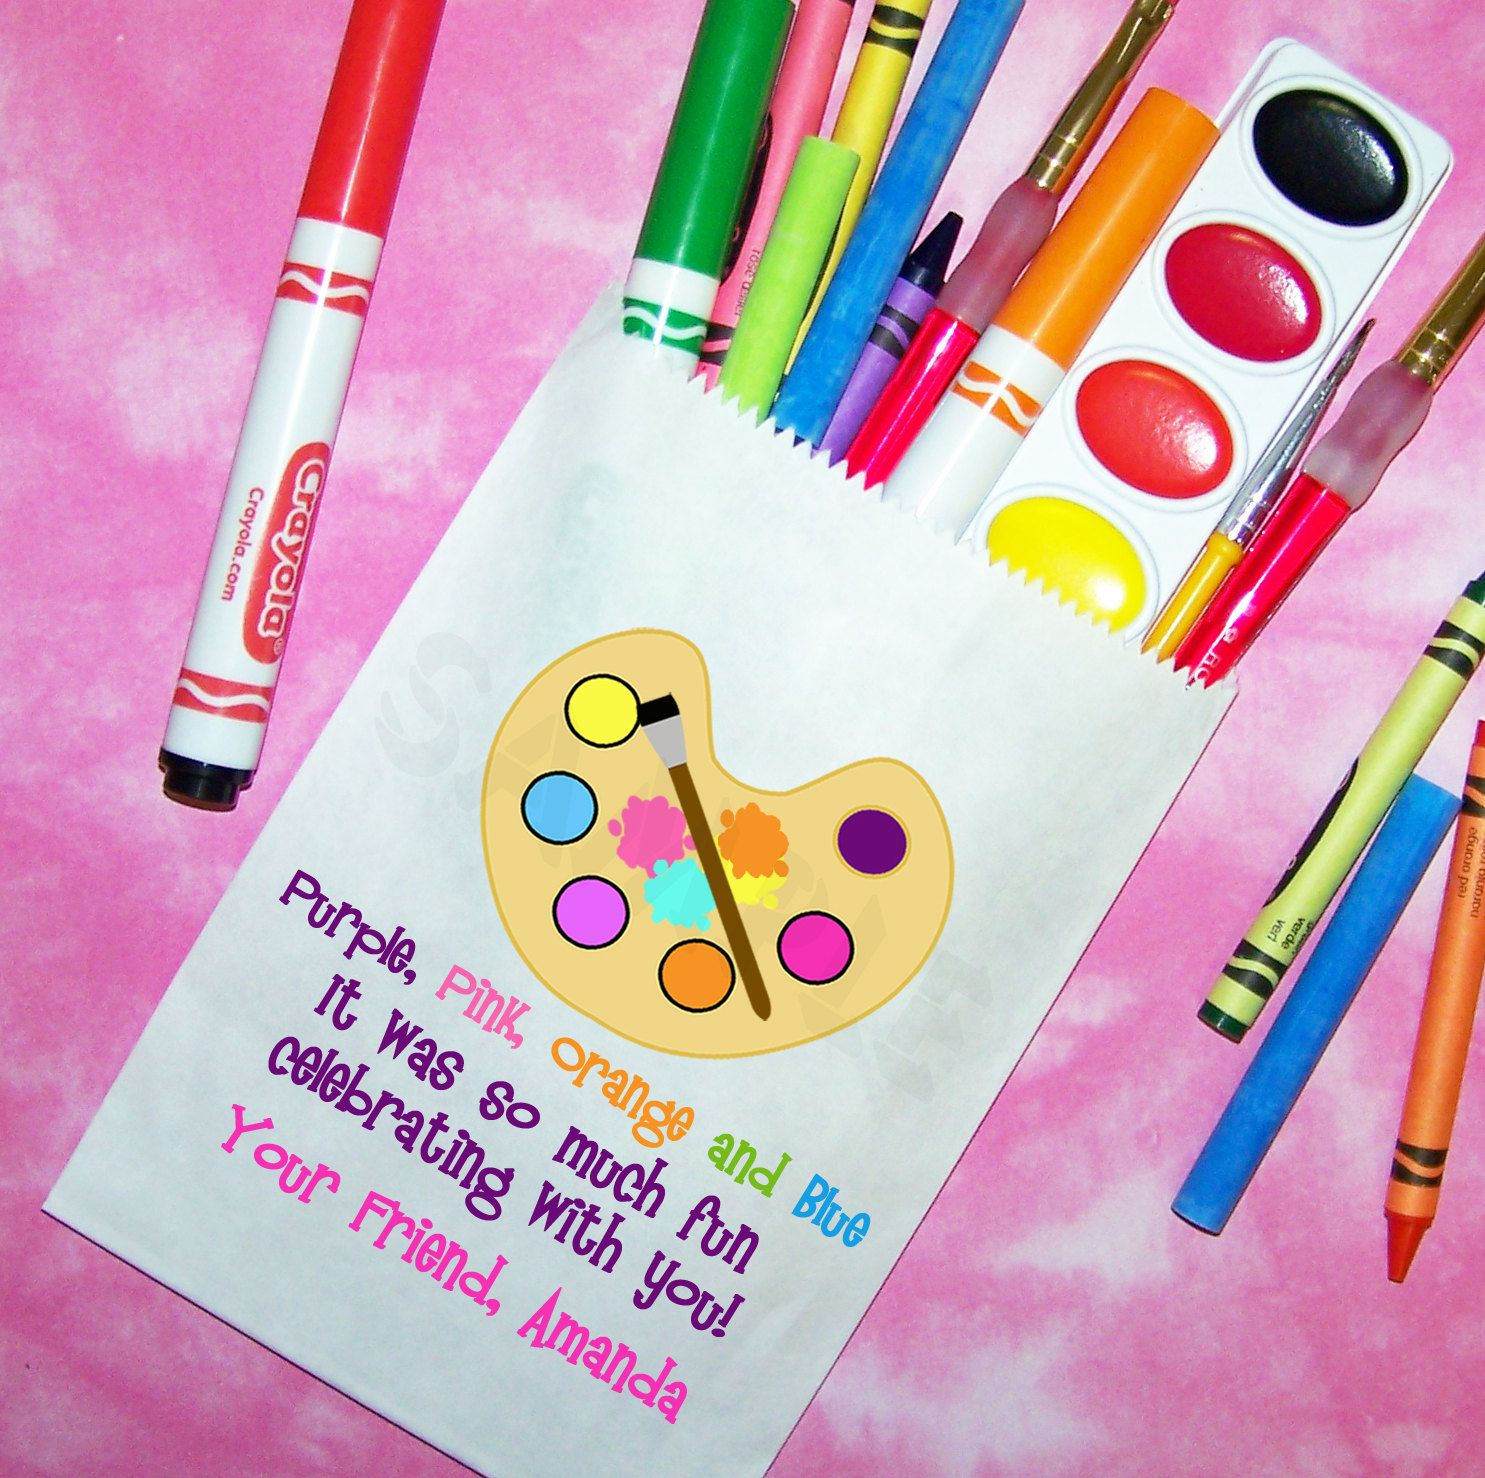 Arts And Crafts Birthday Party Painting Party Favor Bags Etsy In 2021 Birthday Party Crafts Birthday Crafts Diy Party Crafts